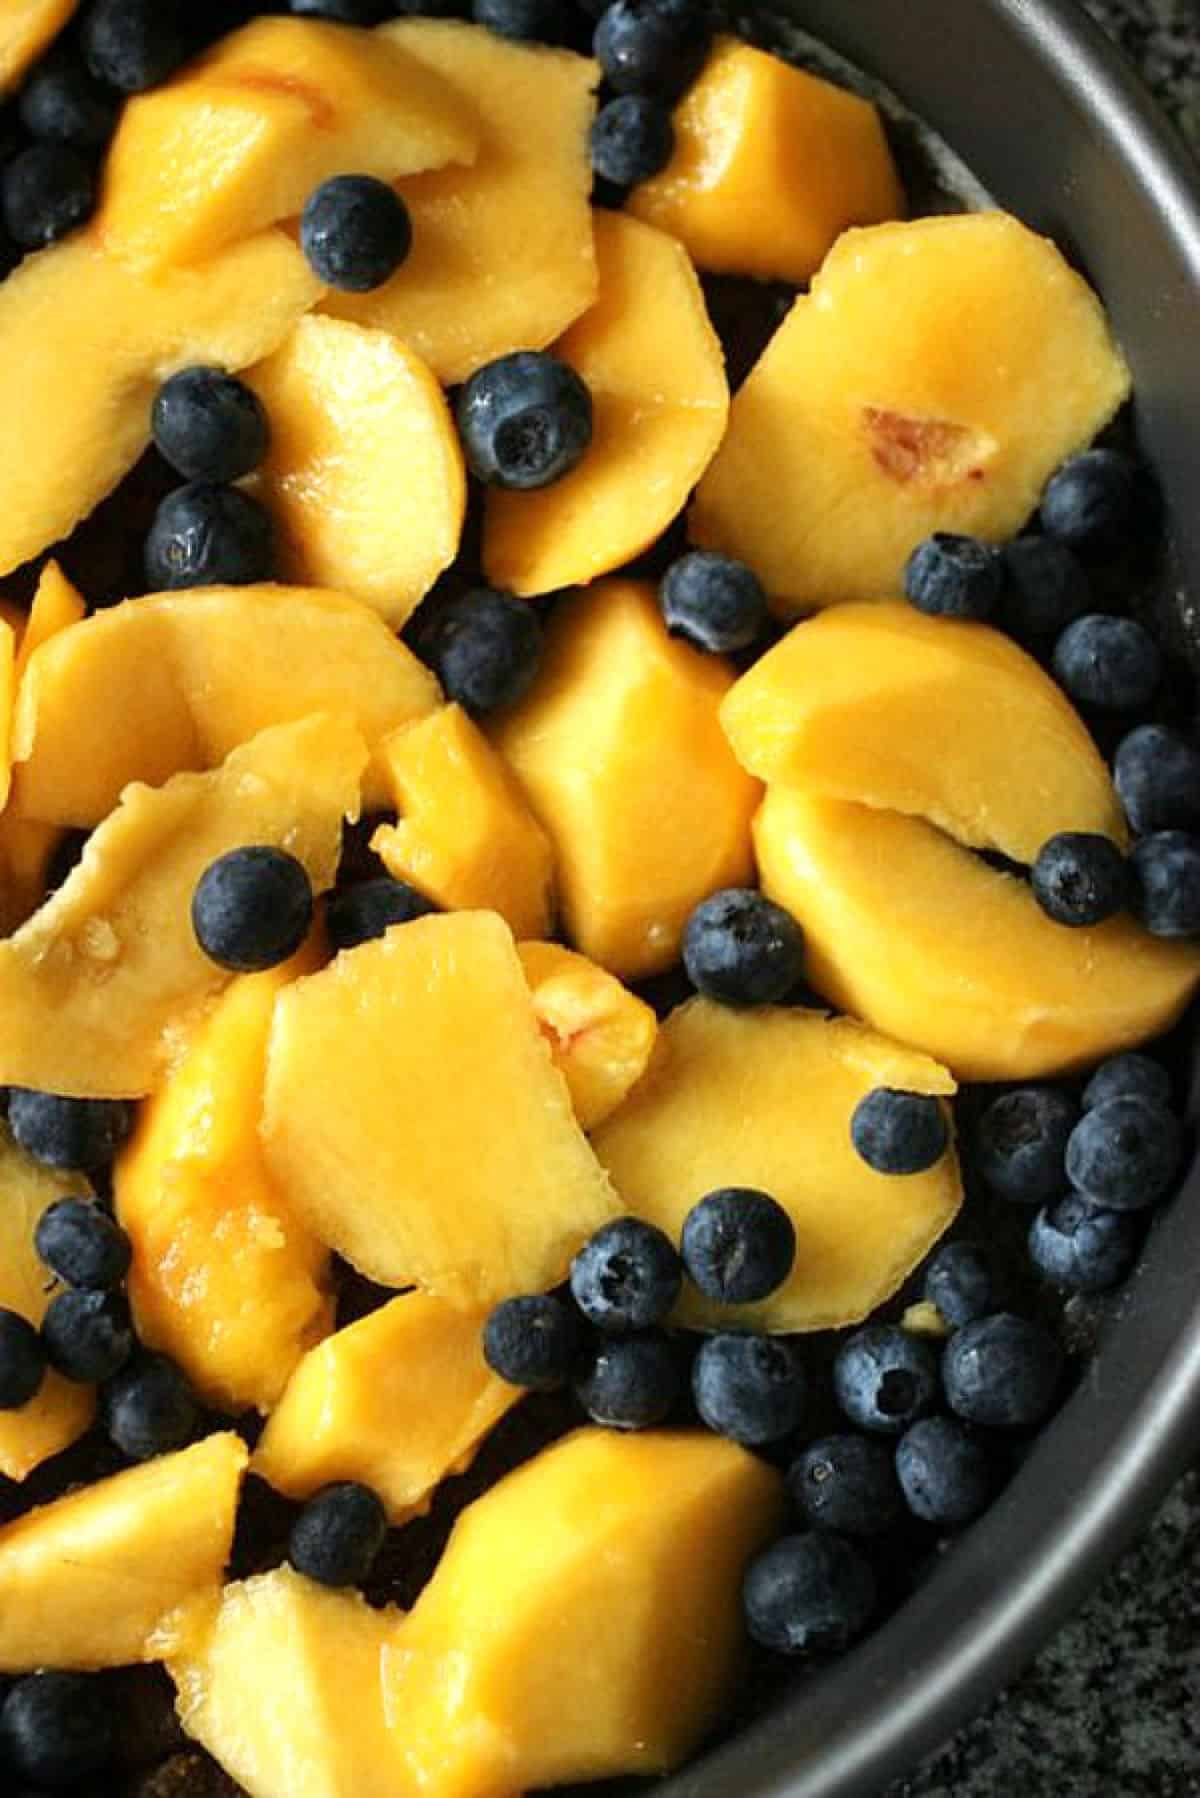 Peach slices and blueberries in round metal pan